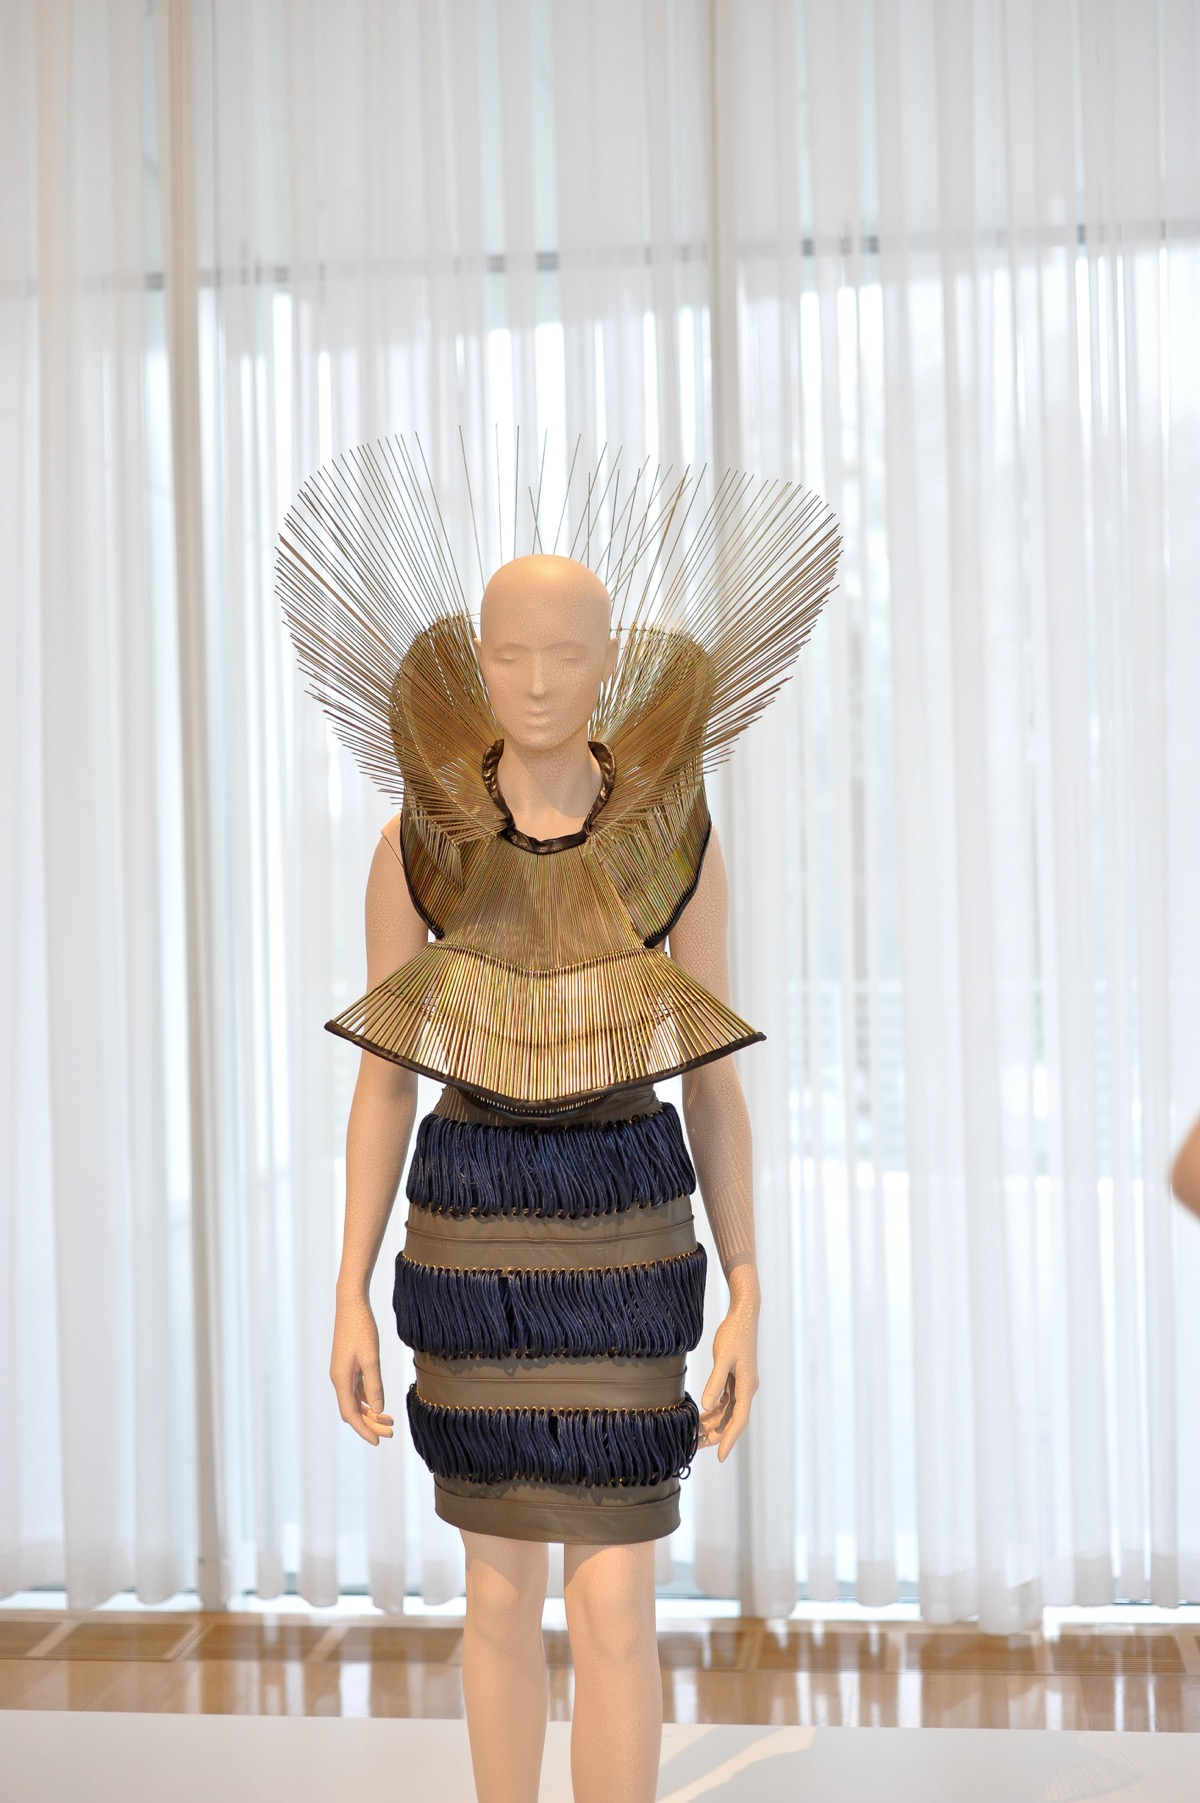 high museum of art iris van herpen - @mystylevita - 12